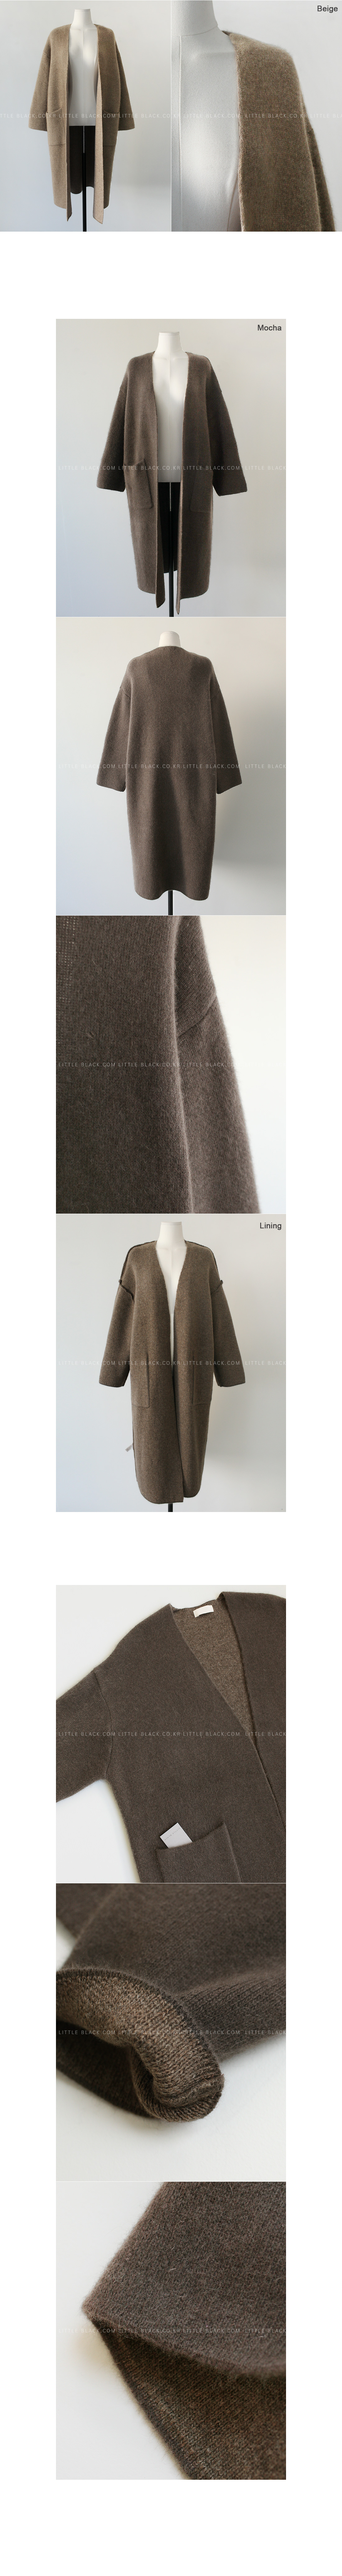 Longline Cut Knit Coat|